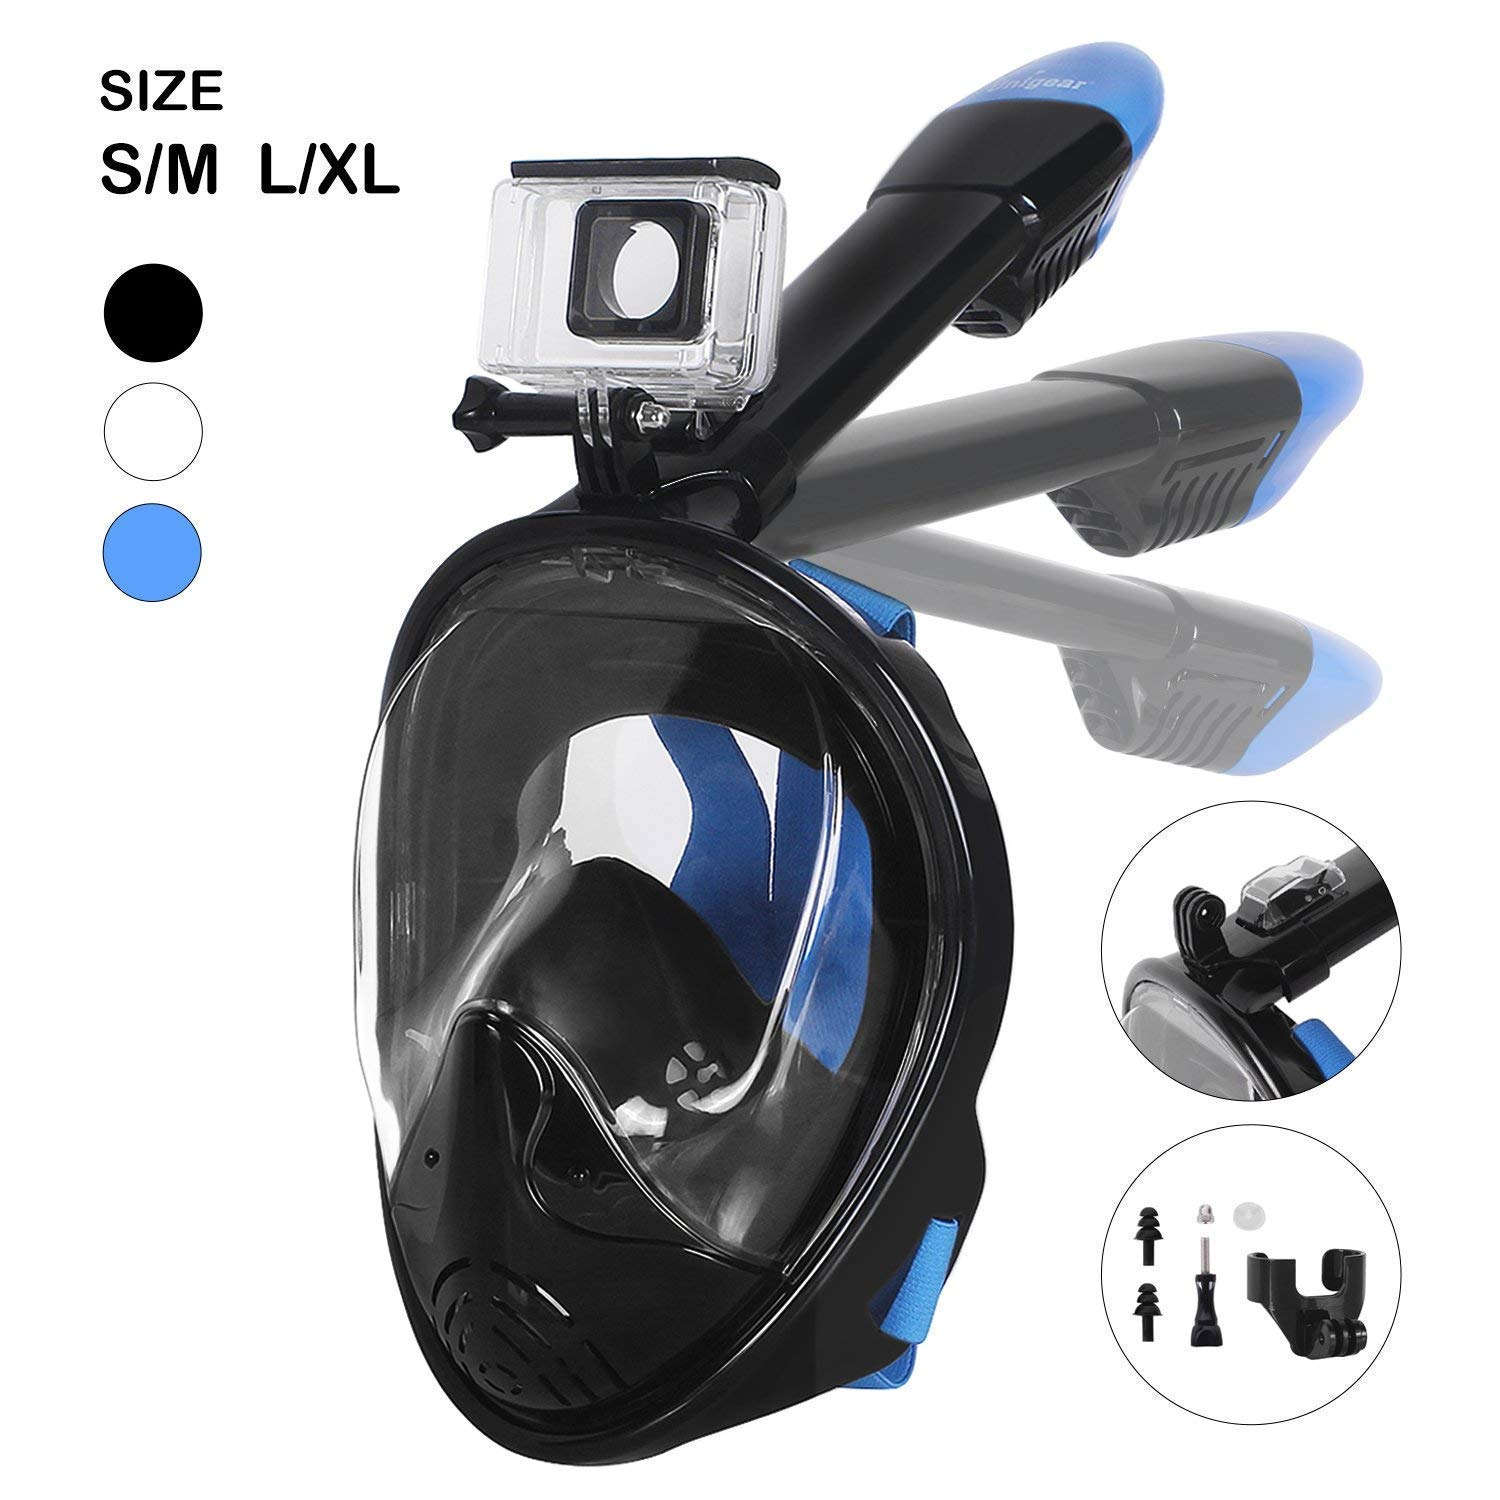 Unigear 180° Full Face Snorkel Mask -Panoramic View with Detachable for GoPro Mount and Earplug,Anti-Fog Anti-Leak Snorkeling Design for Adults and Youth